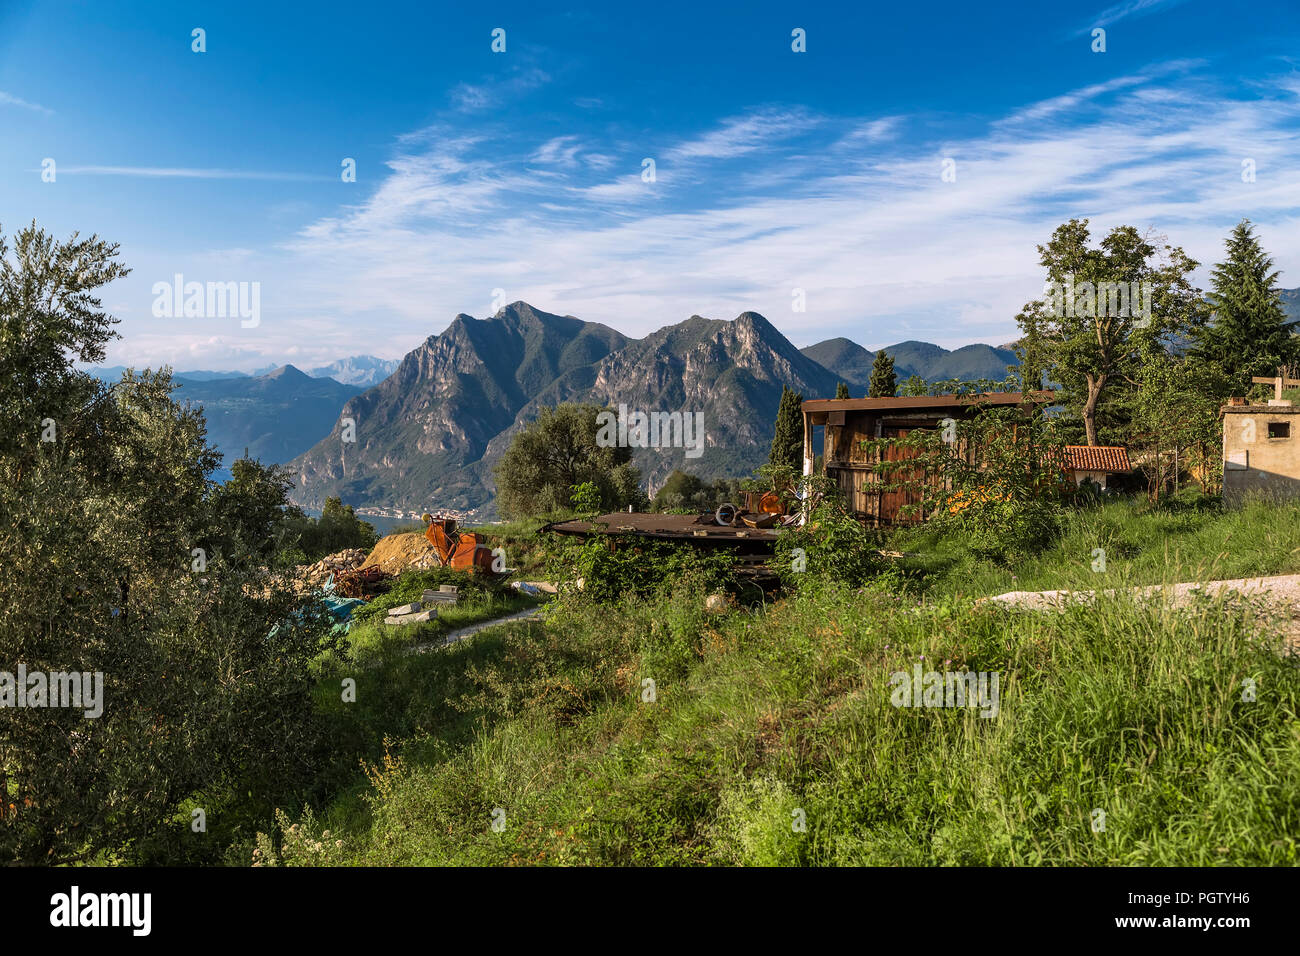 Rural Italian landscape on Lake Iseo and the mountains on the horizon. Italy - Stock Image